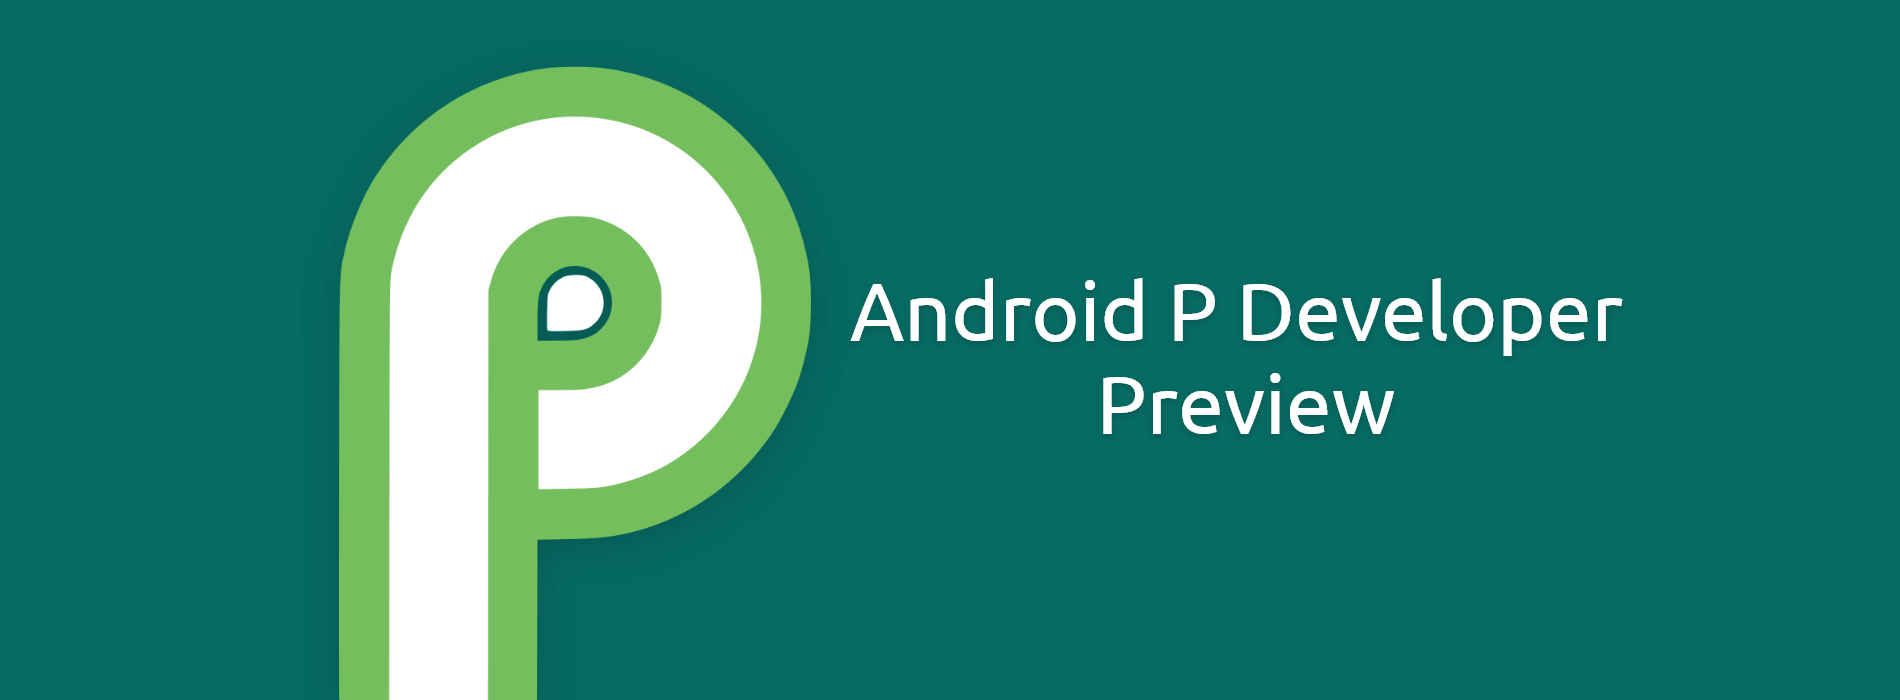 Android P First Developer Preview: Next flavor of Android